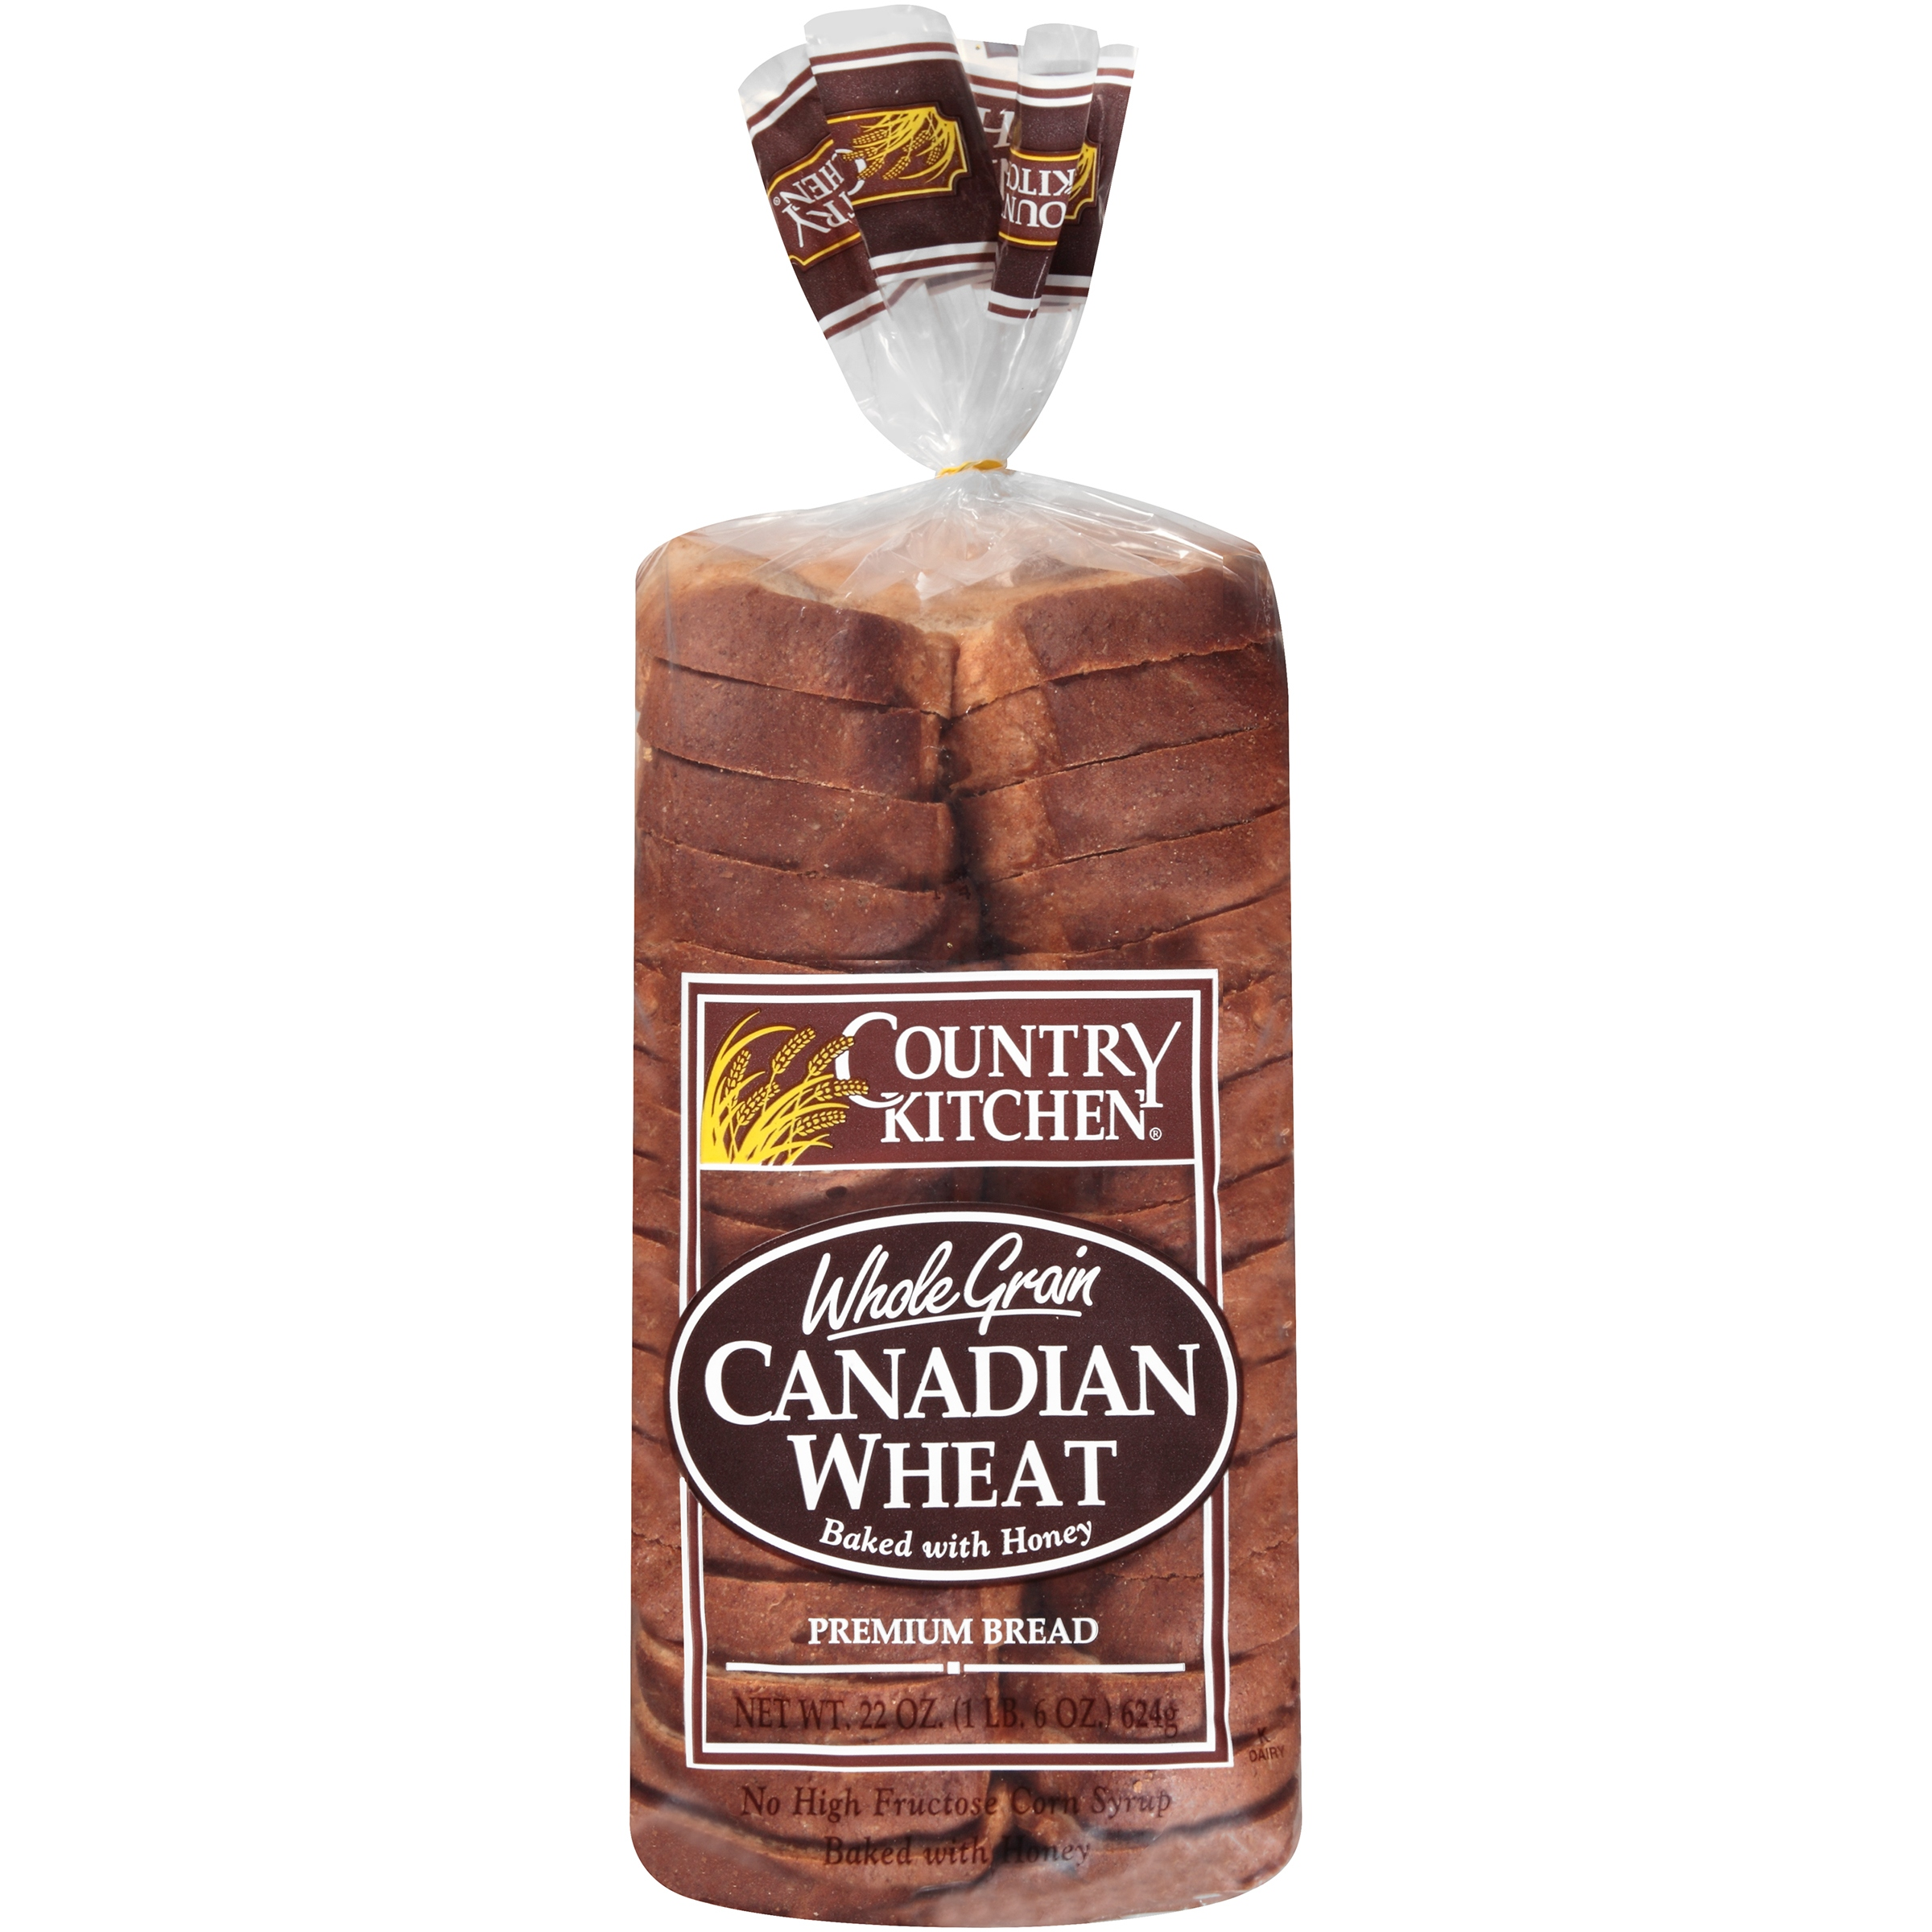 Country Kitchen® Whole Grain Canadian Wheat Bread 22 oz. Loaf